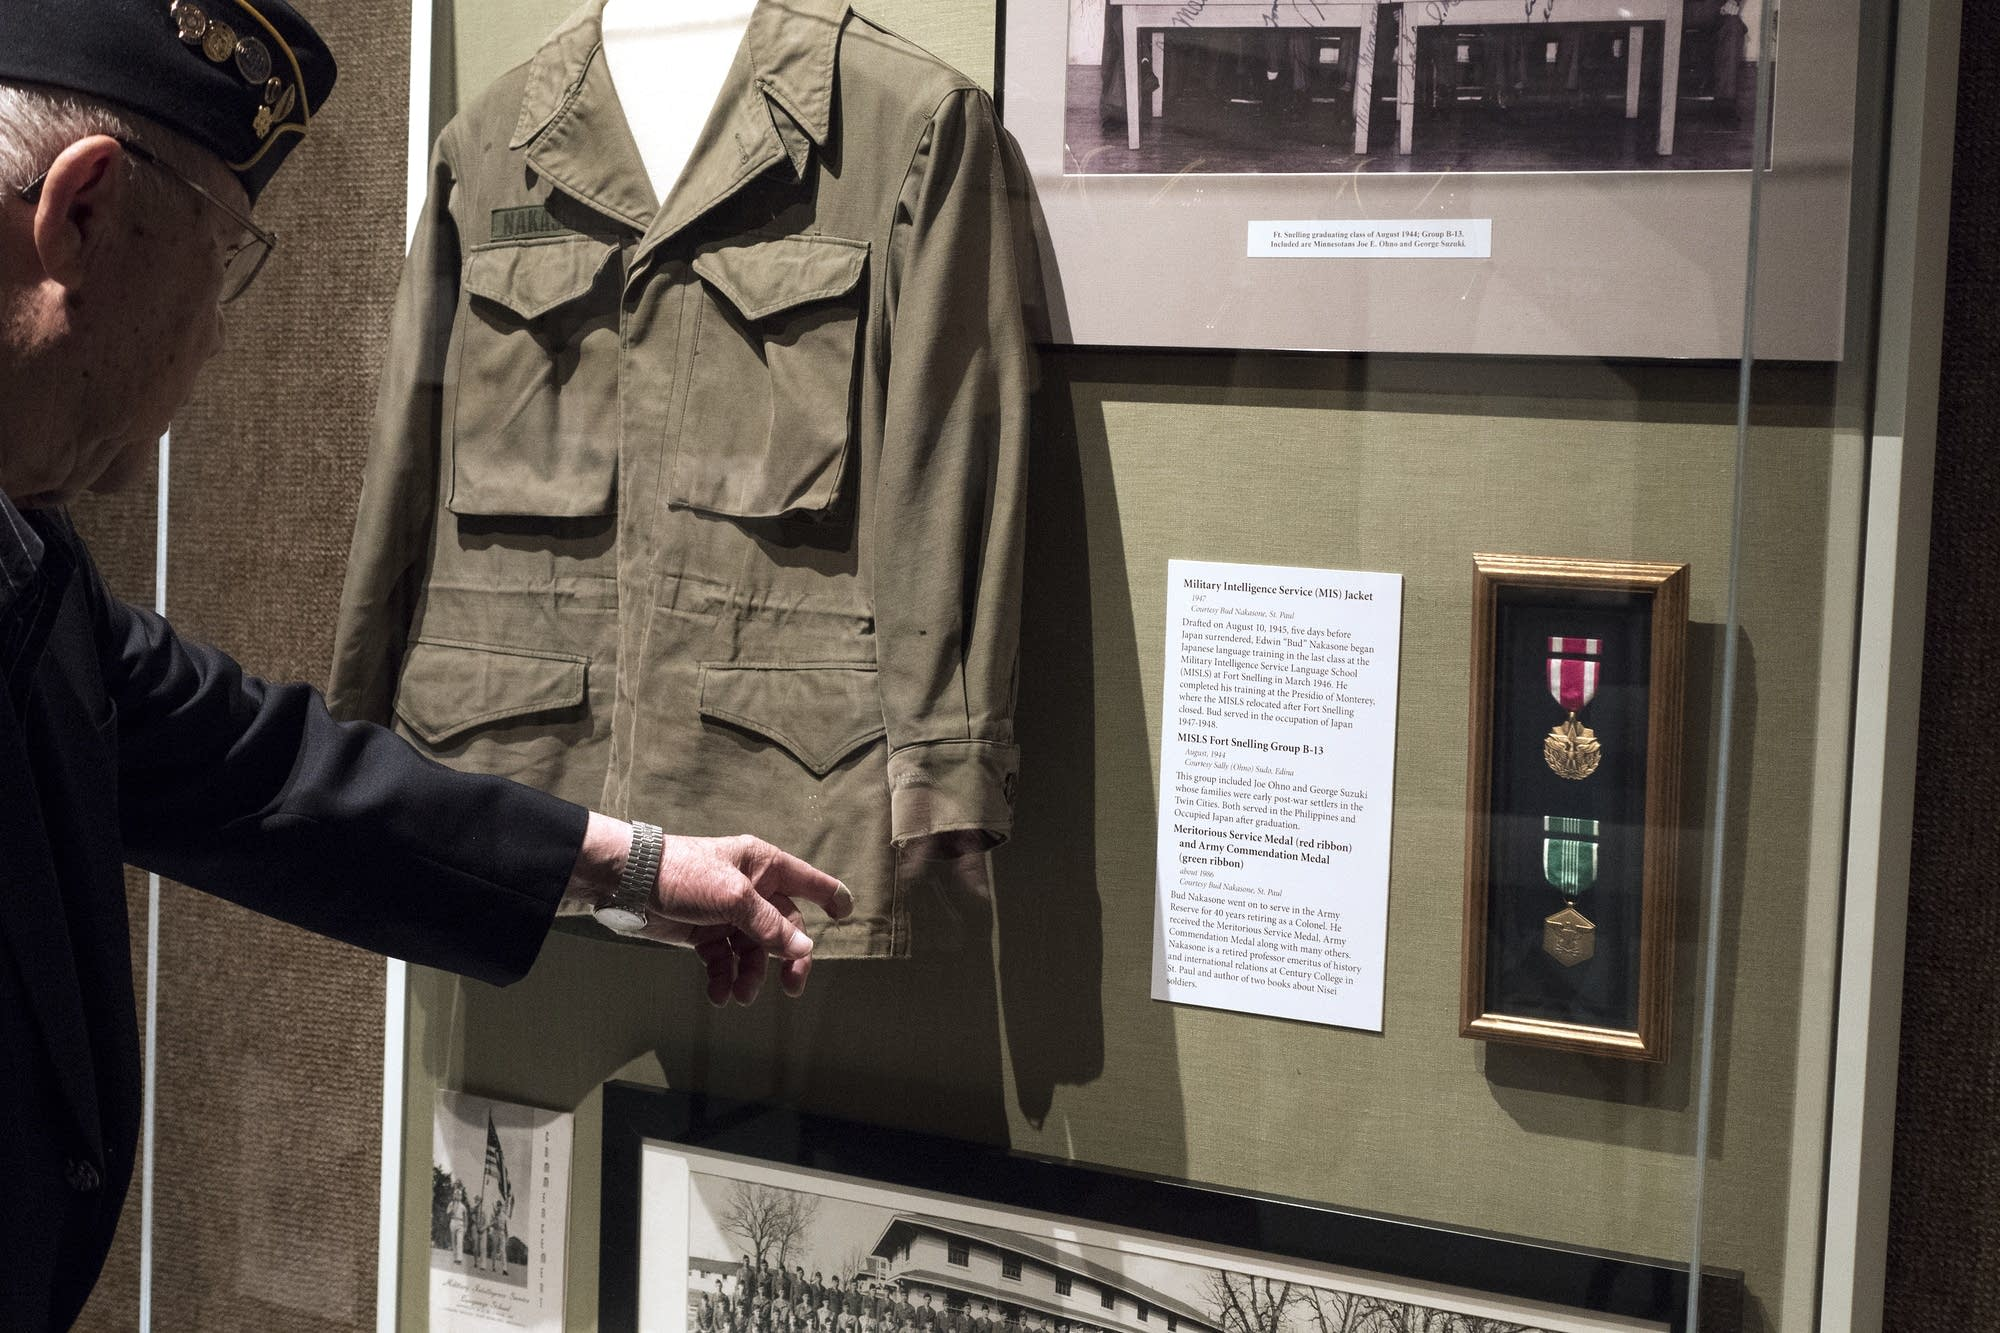 Bud Nakasone of St. Paul points out his jacket and medals in the display.